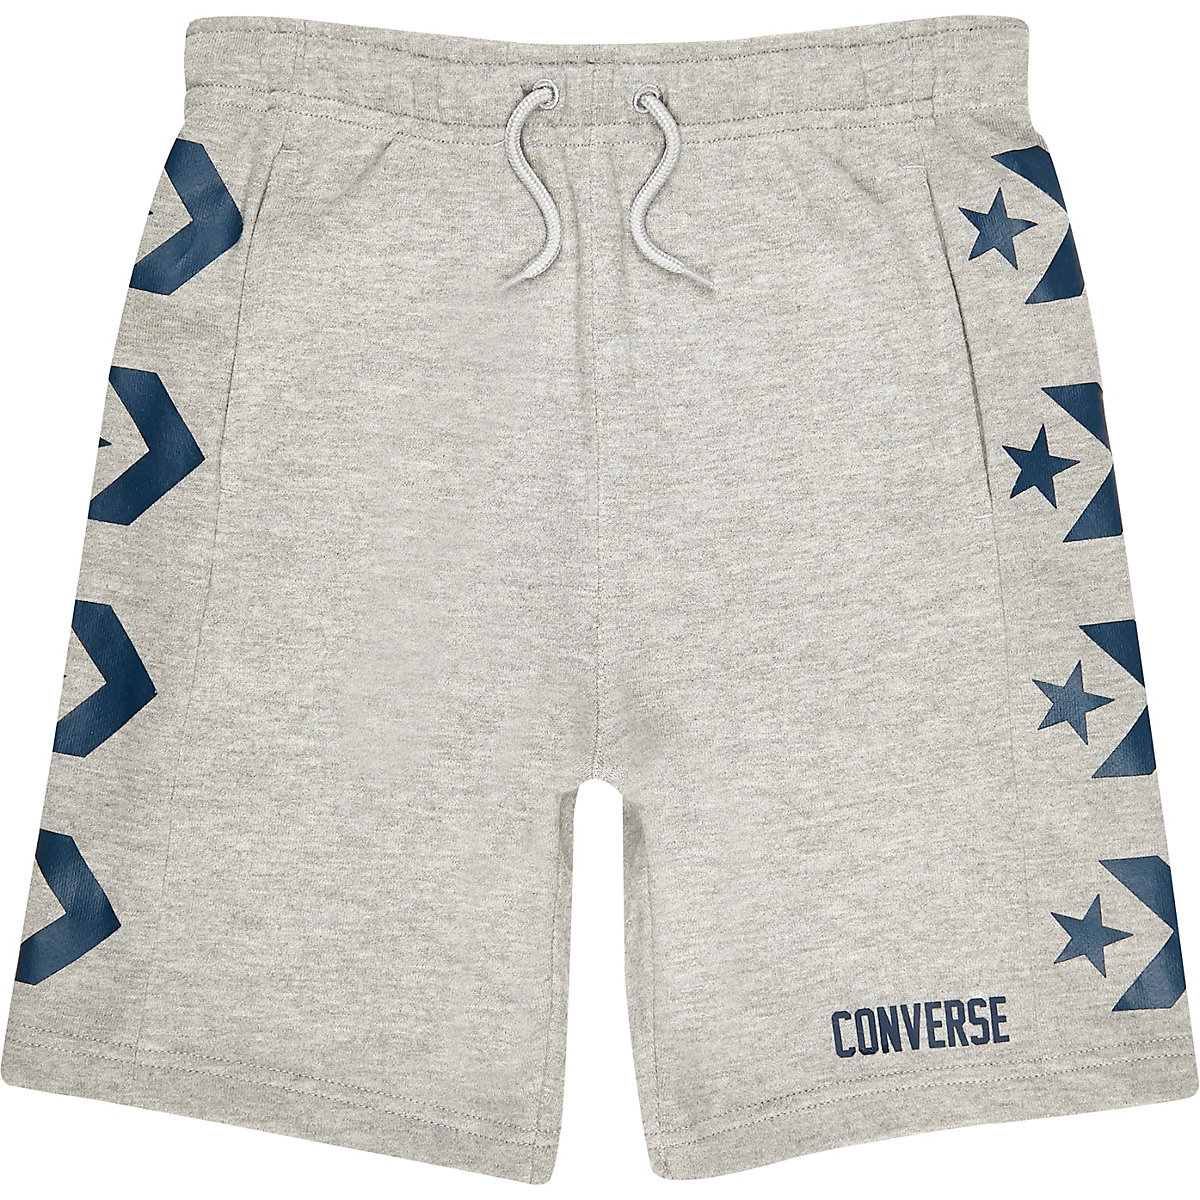 Boys grey Converse logo jersey shorts